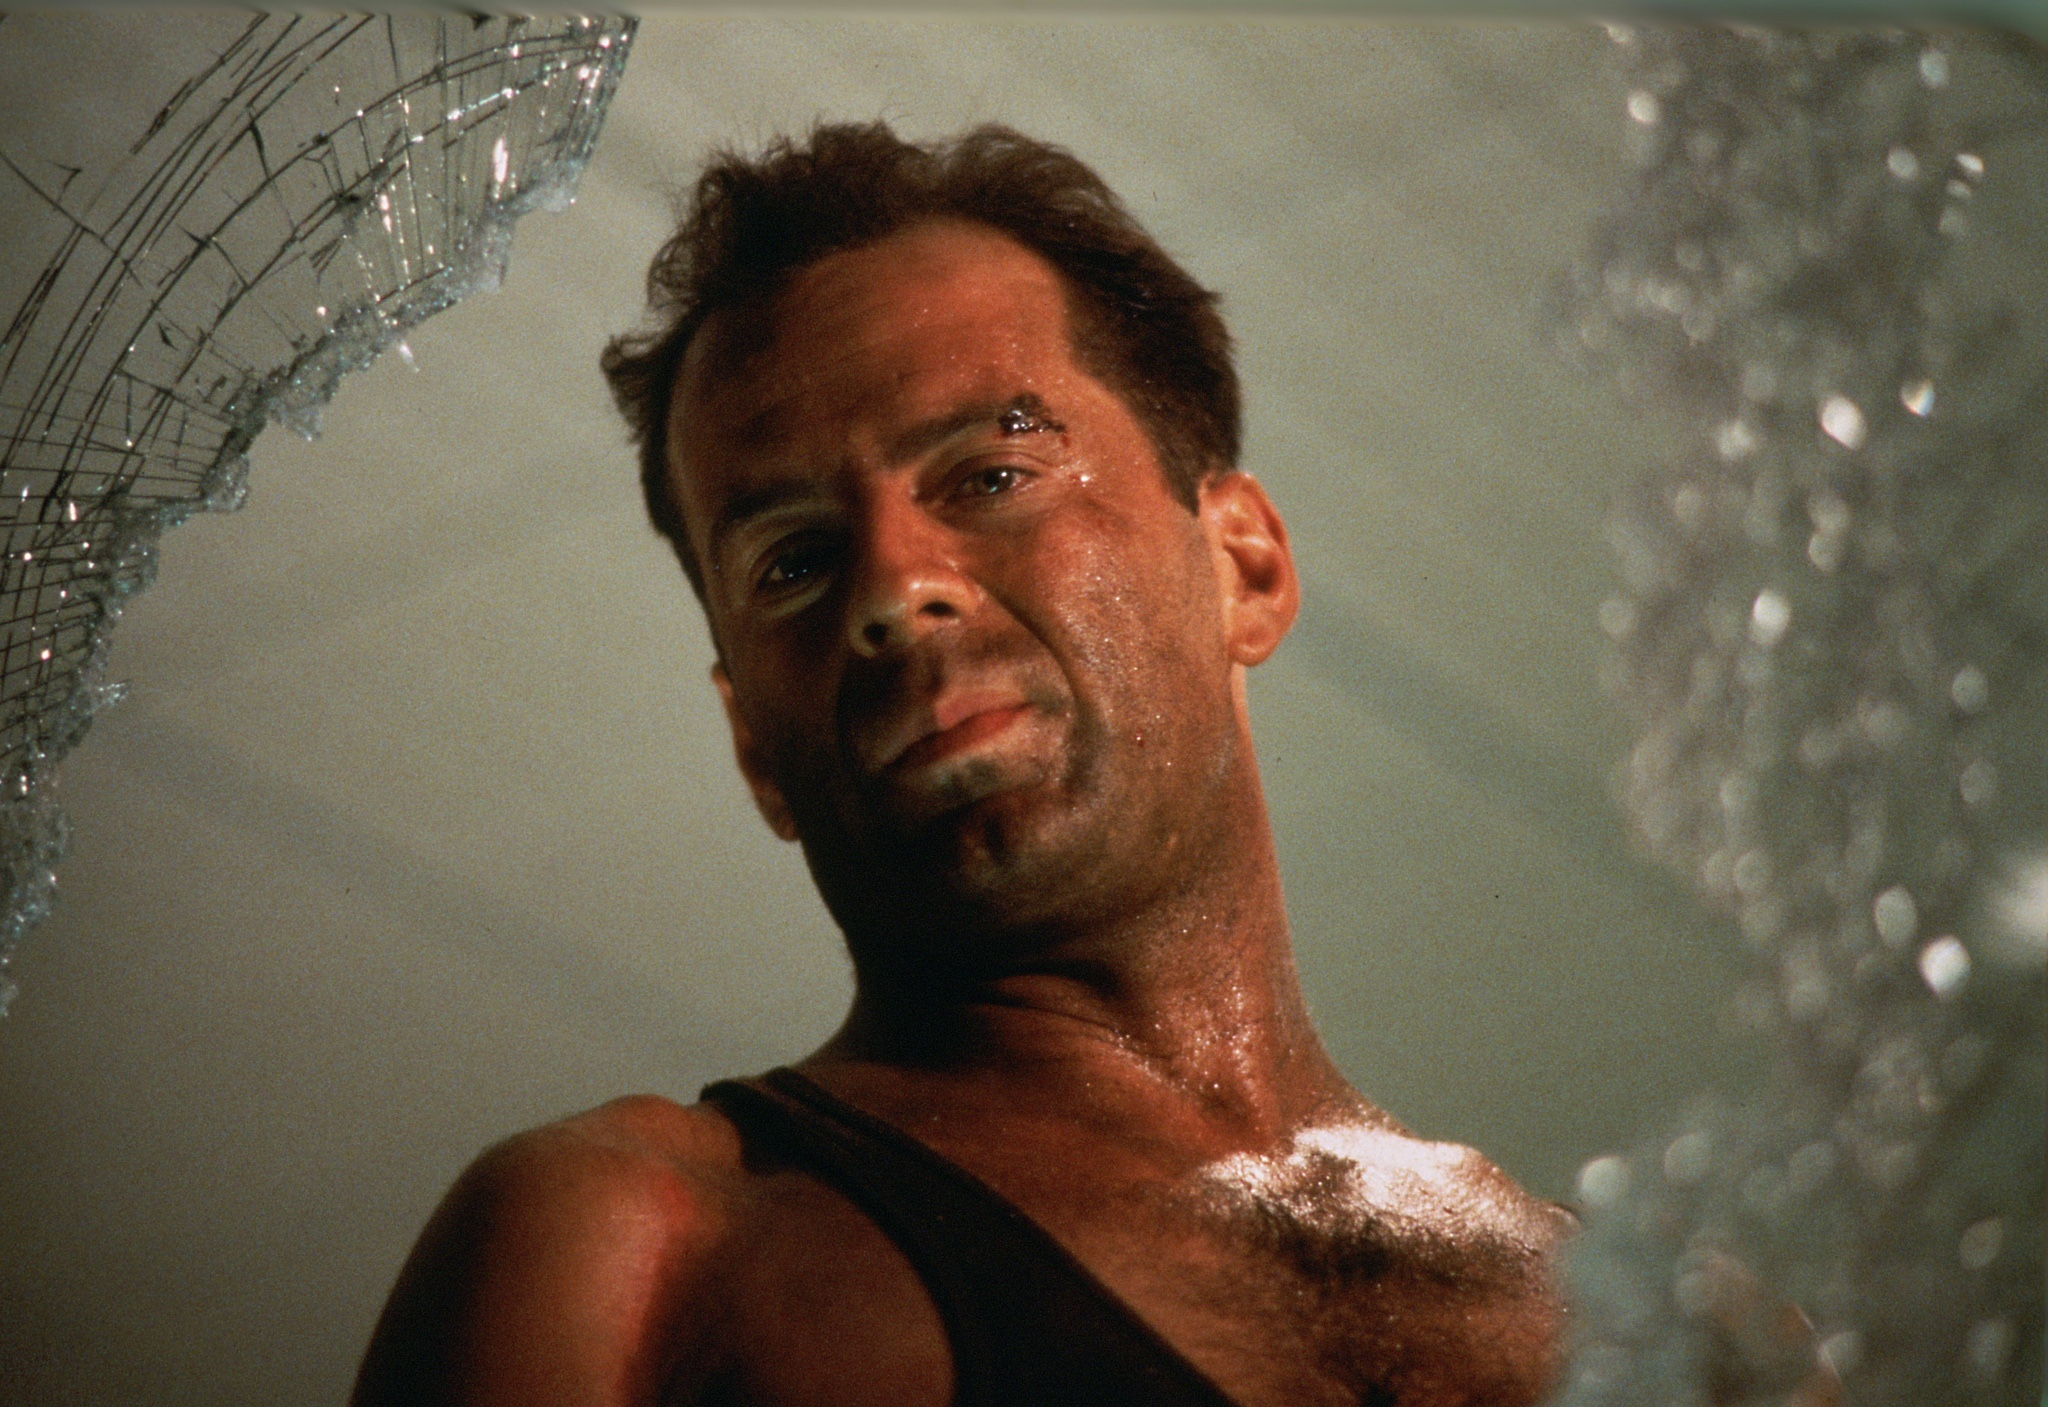 An image from Die Hard showing McClane looking out of a broken window